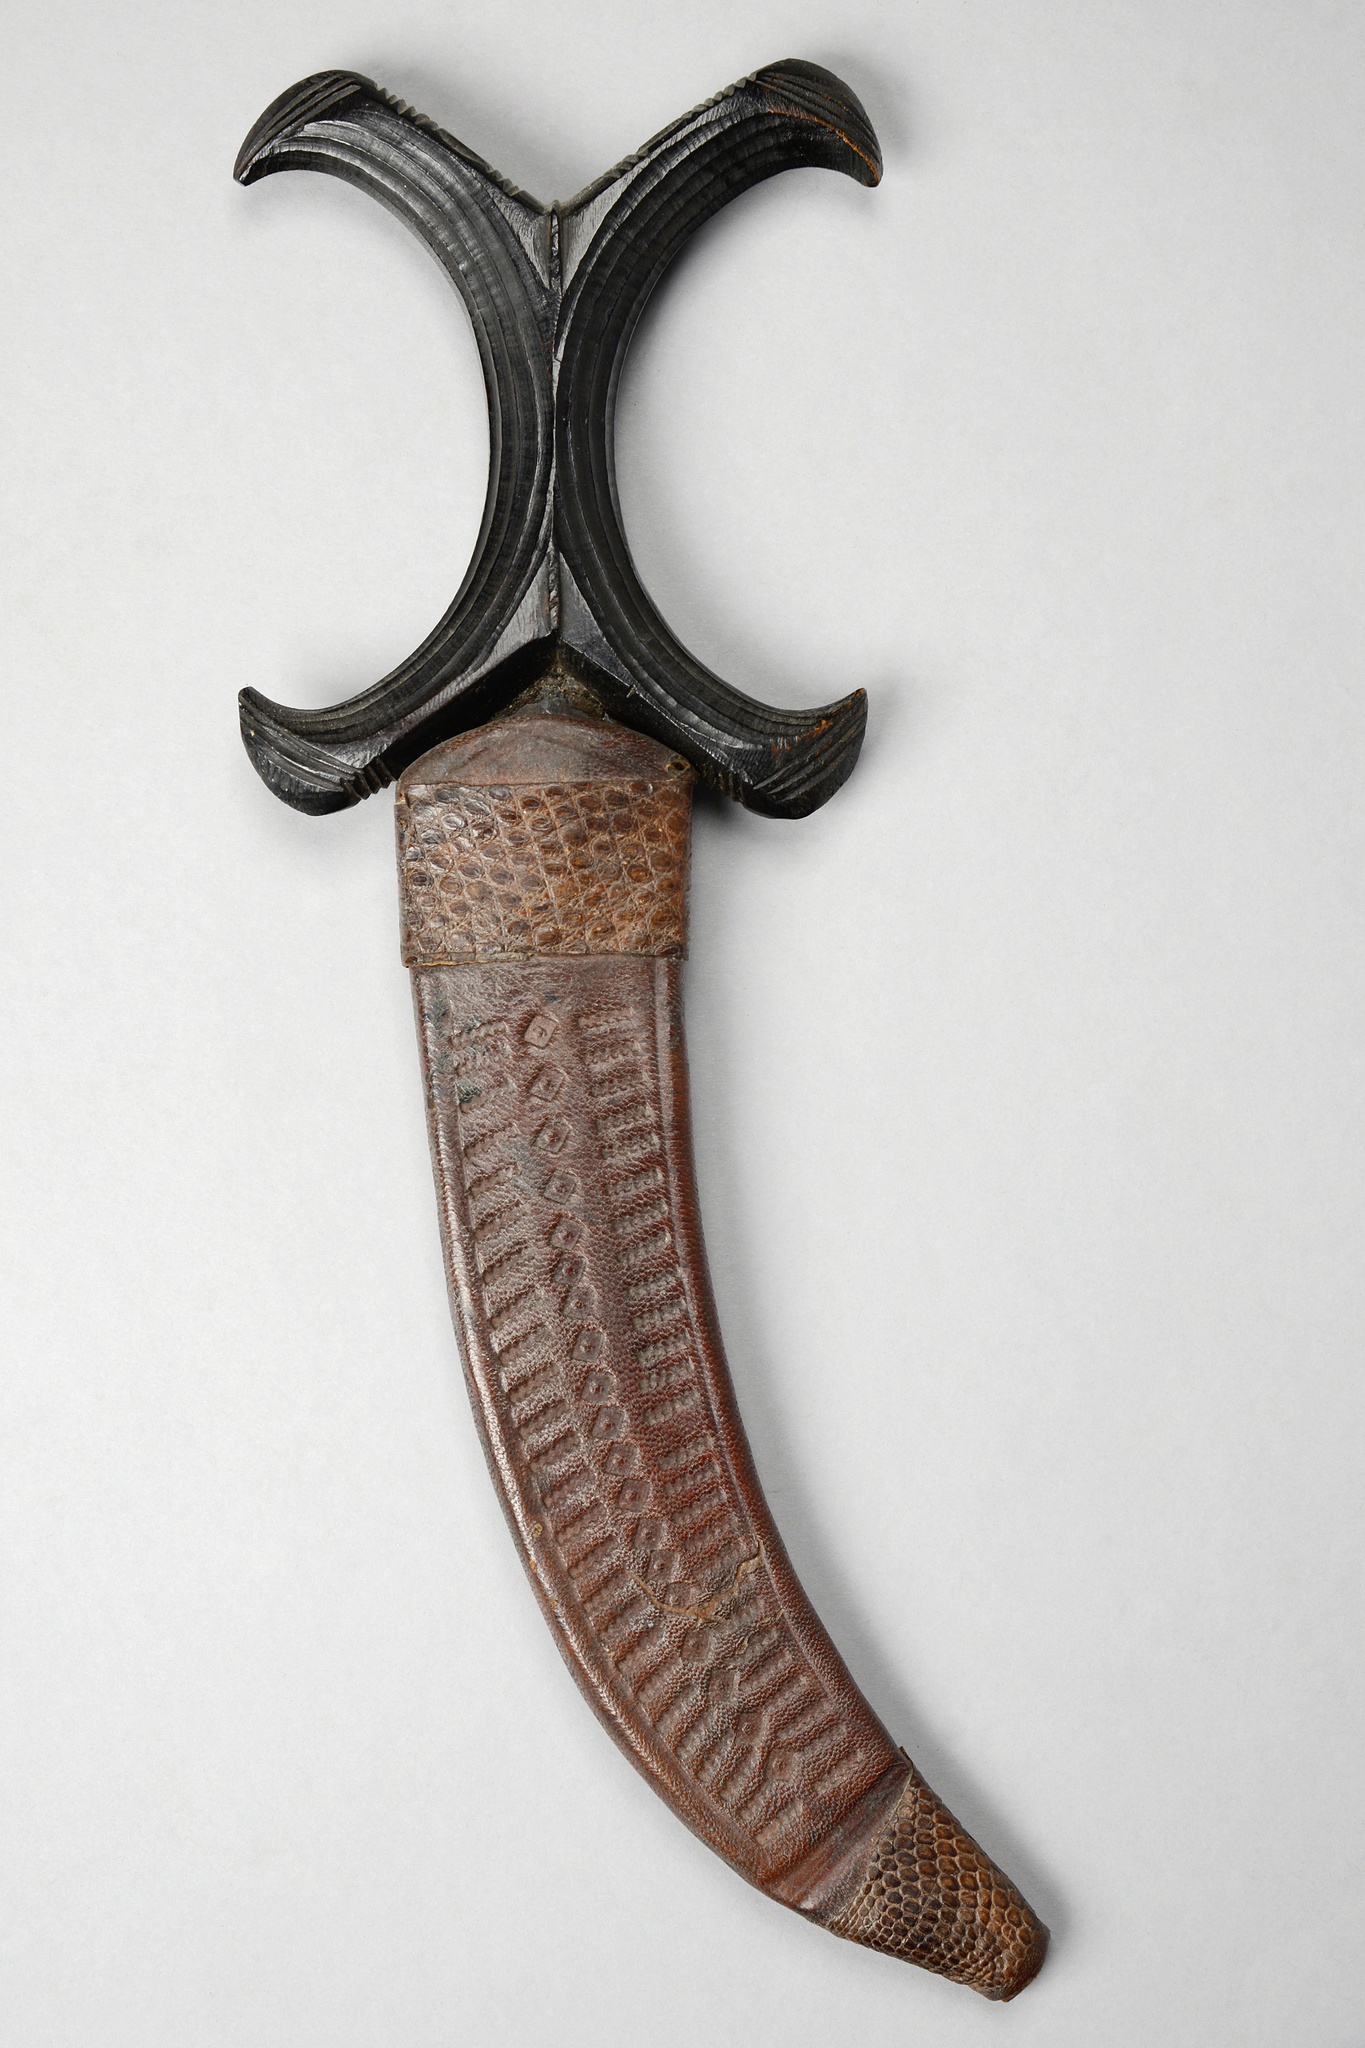 Curved dagger in leather sheath